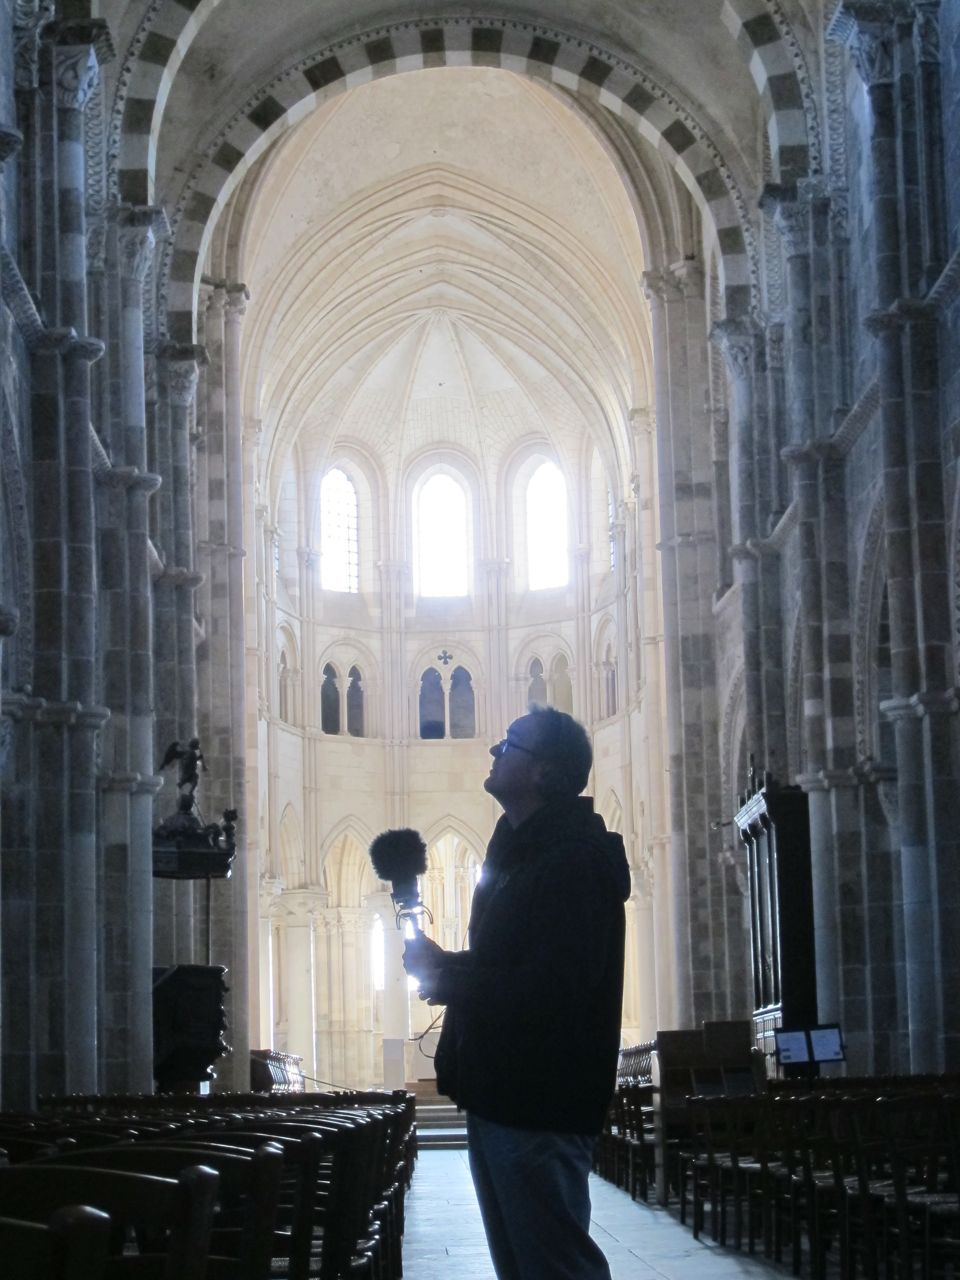 David Hendy recording in the Abbey at Vezelay, France.